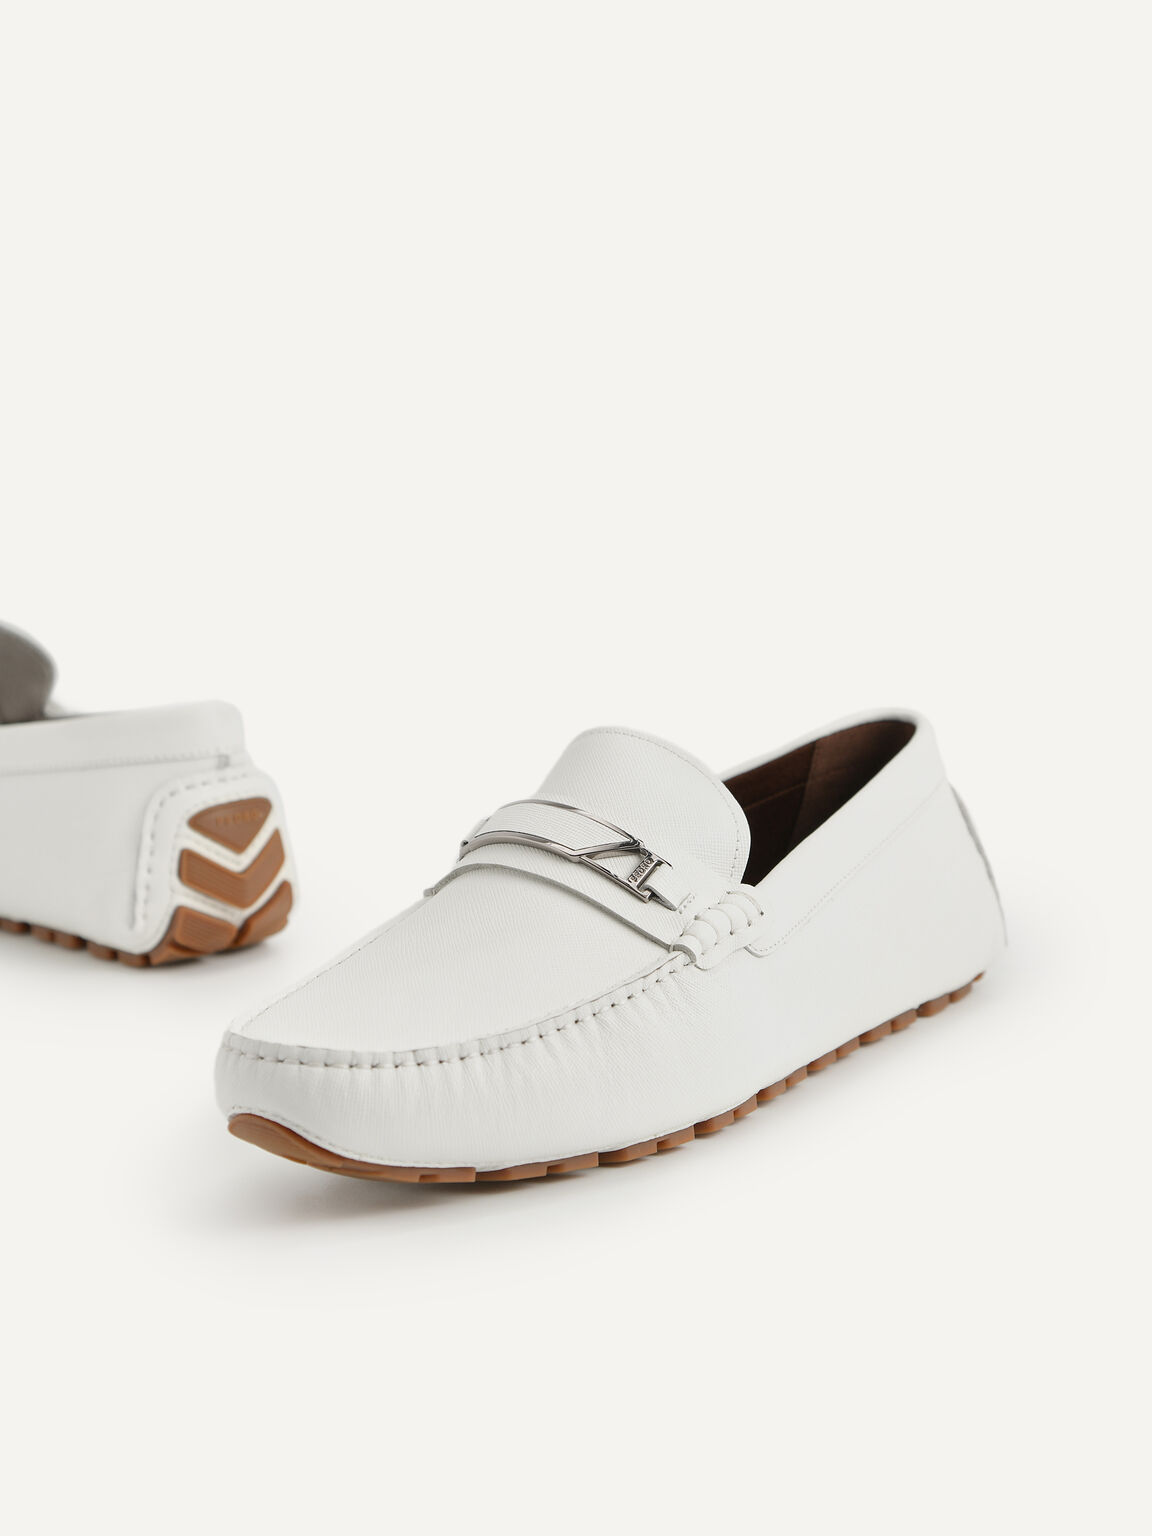 Leather Moccasins with Metal Bit, White, hi-res